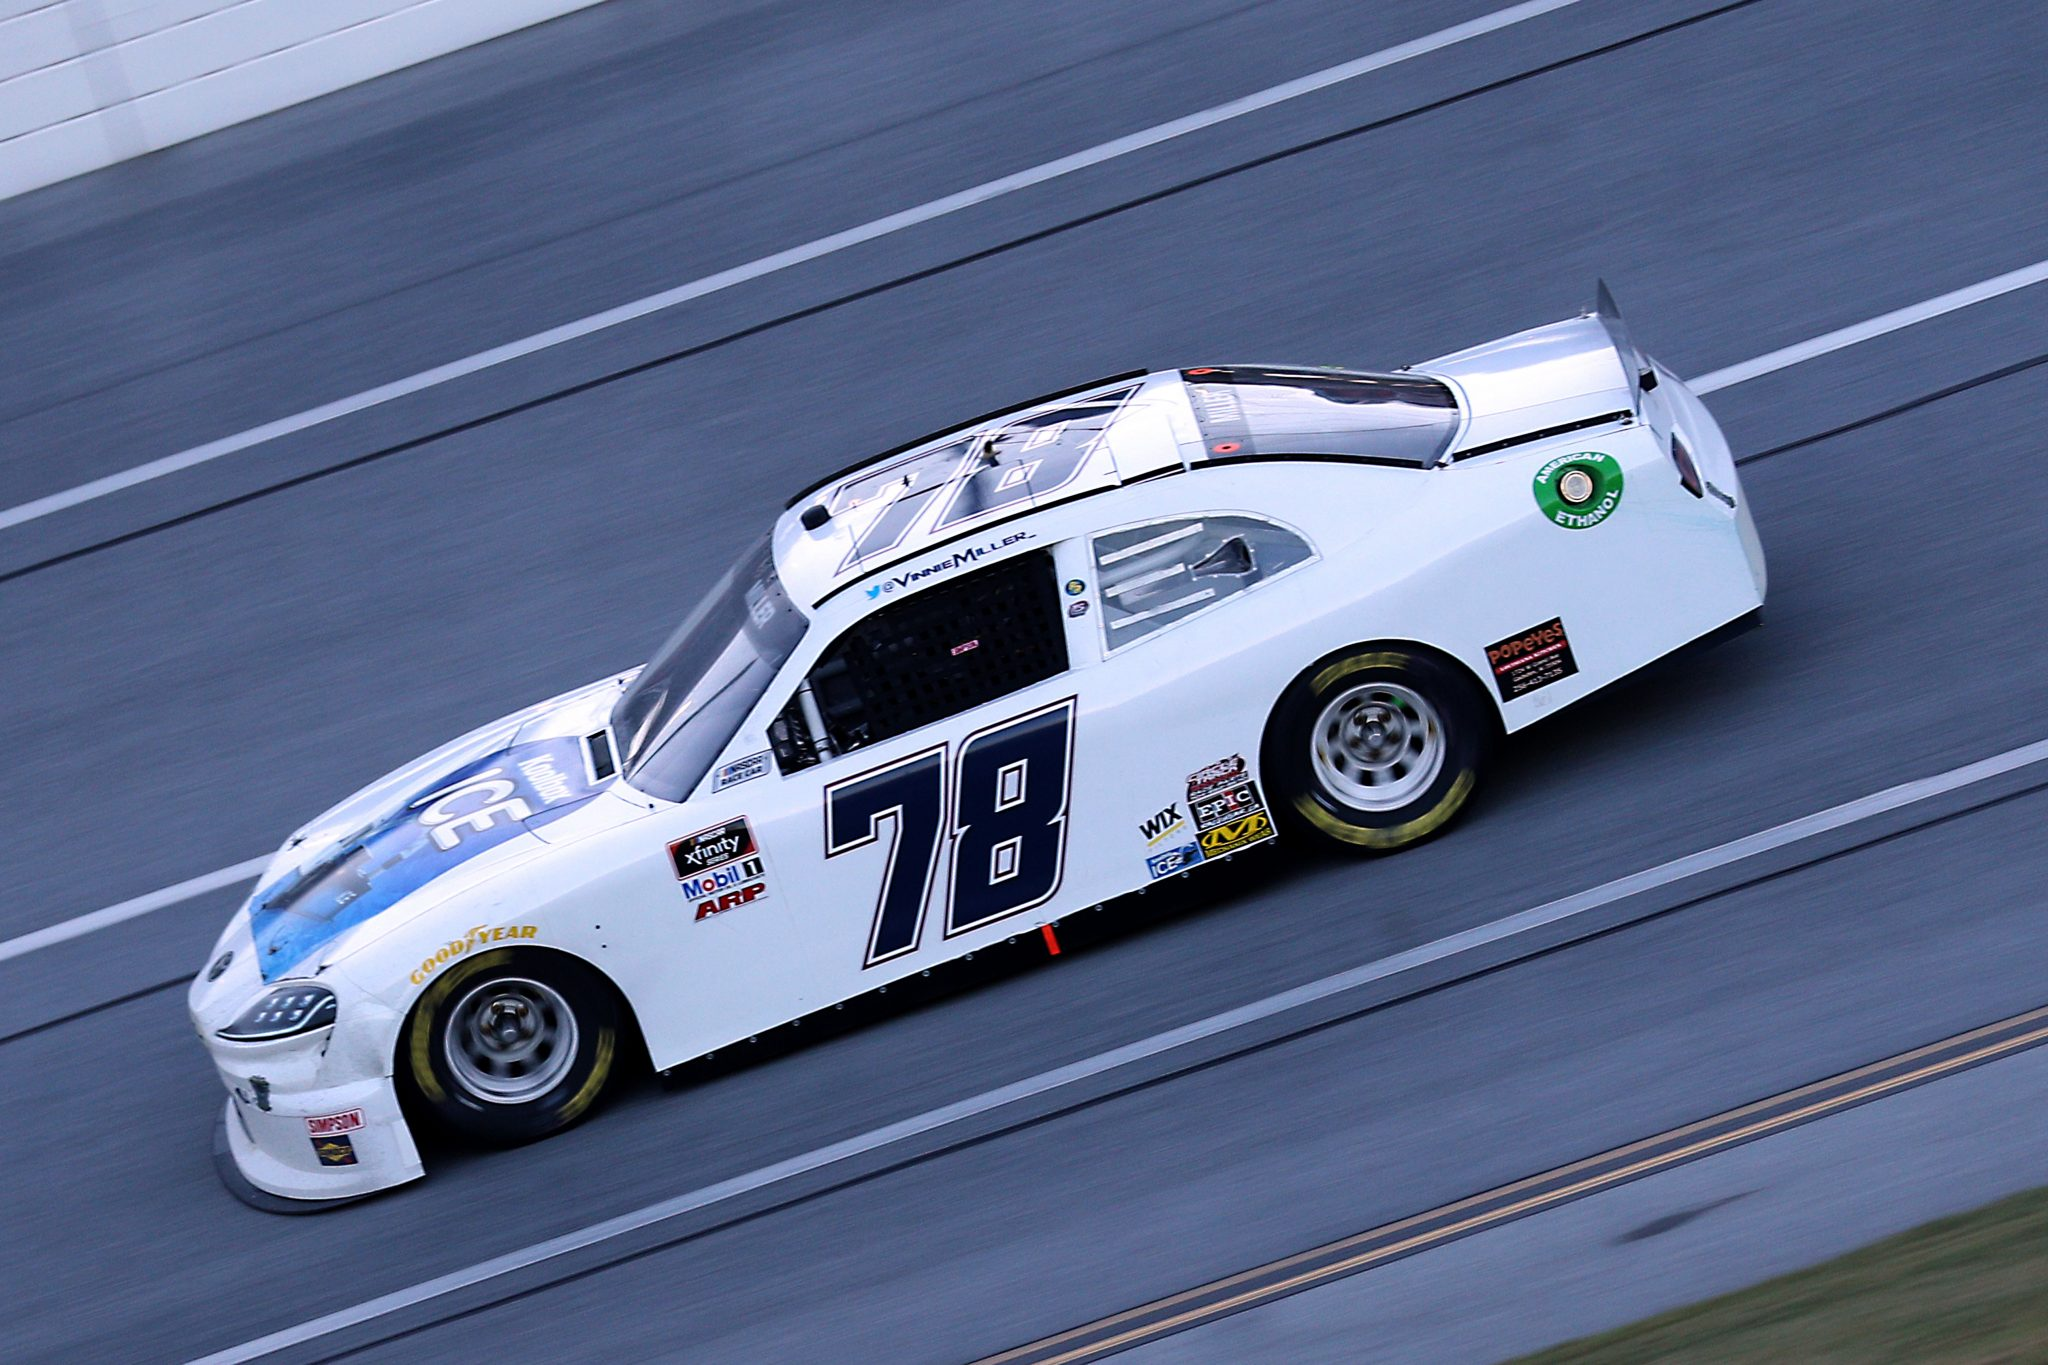 TALLADEGA, ALABAMA - OCTOBER 03: Vinnie Miller, driver of the #78 Koolbox Ice Toyota, drives during the NASCAR Xfinity Series Ag-Pro 300 at Talladega Superspeedway on October 03, 2020 in Talladega, Alabama. (Photo by Chris Graythen/Getty Images) | Getty Images